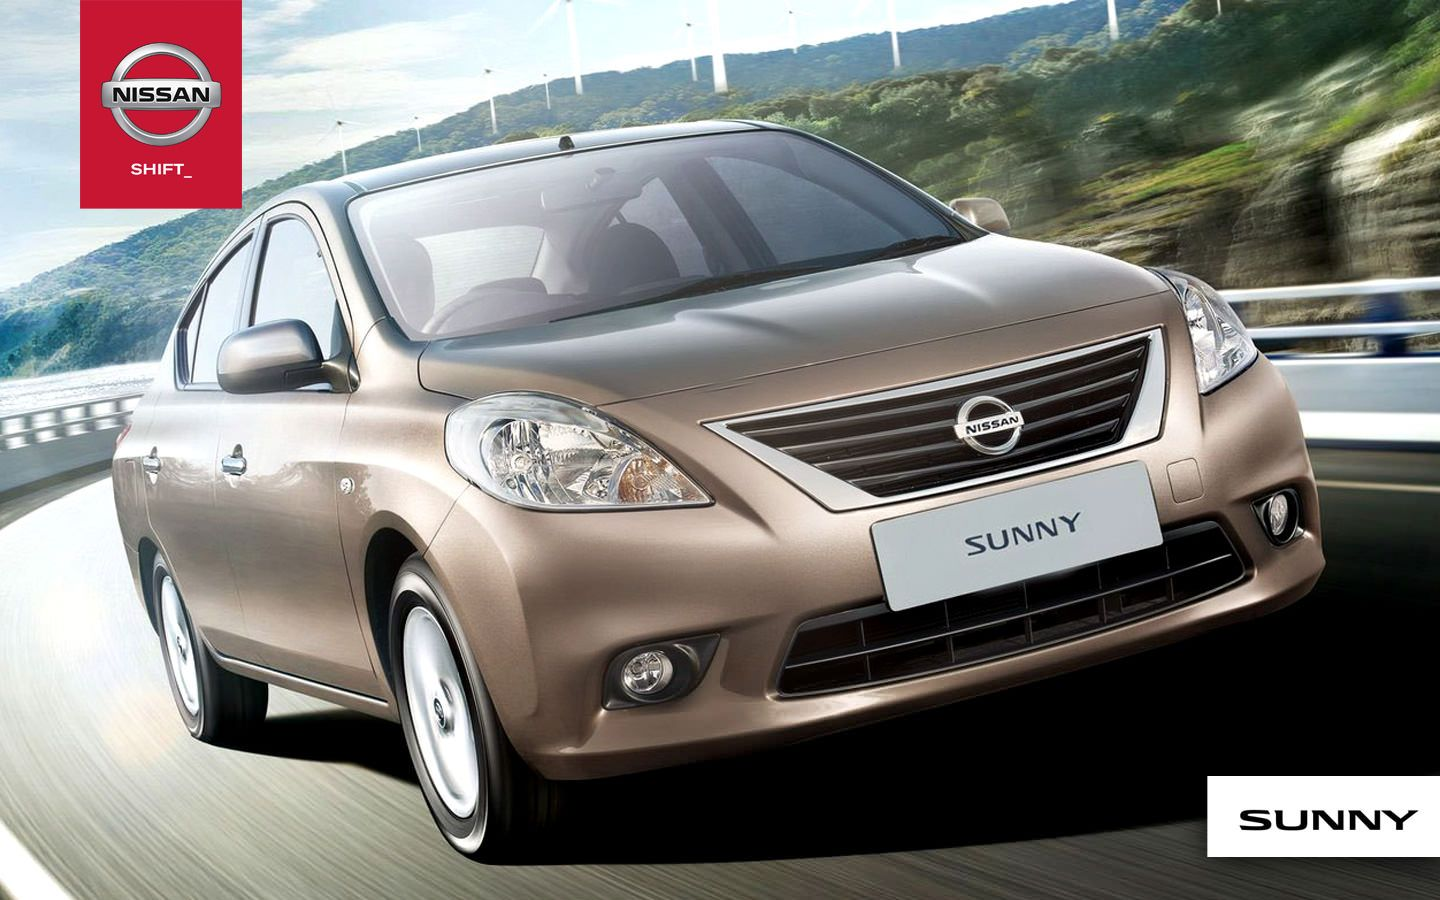 Nissansunny This Car Will Keep You Always Ahead Shakti Nissan Nissan Sunny Nissan Cars Nissan